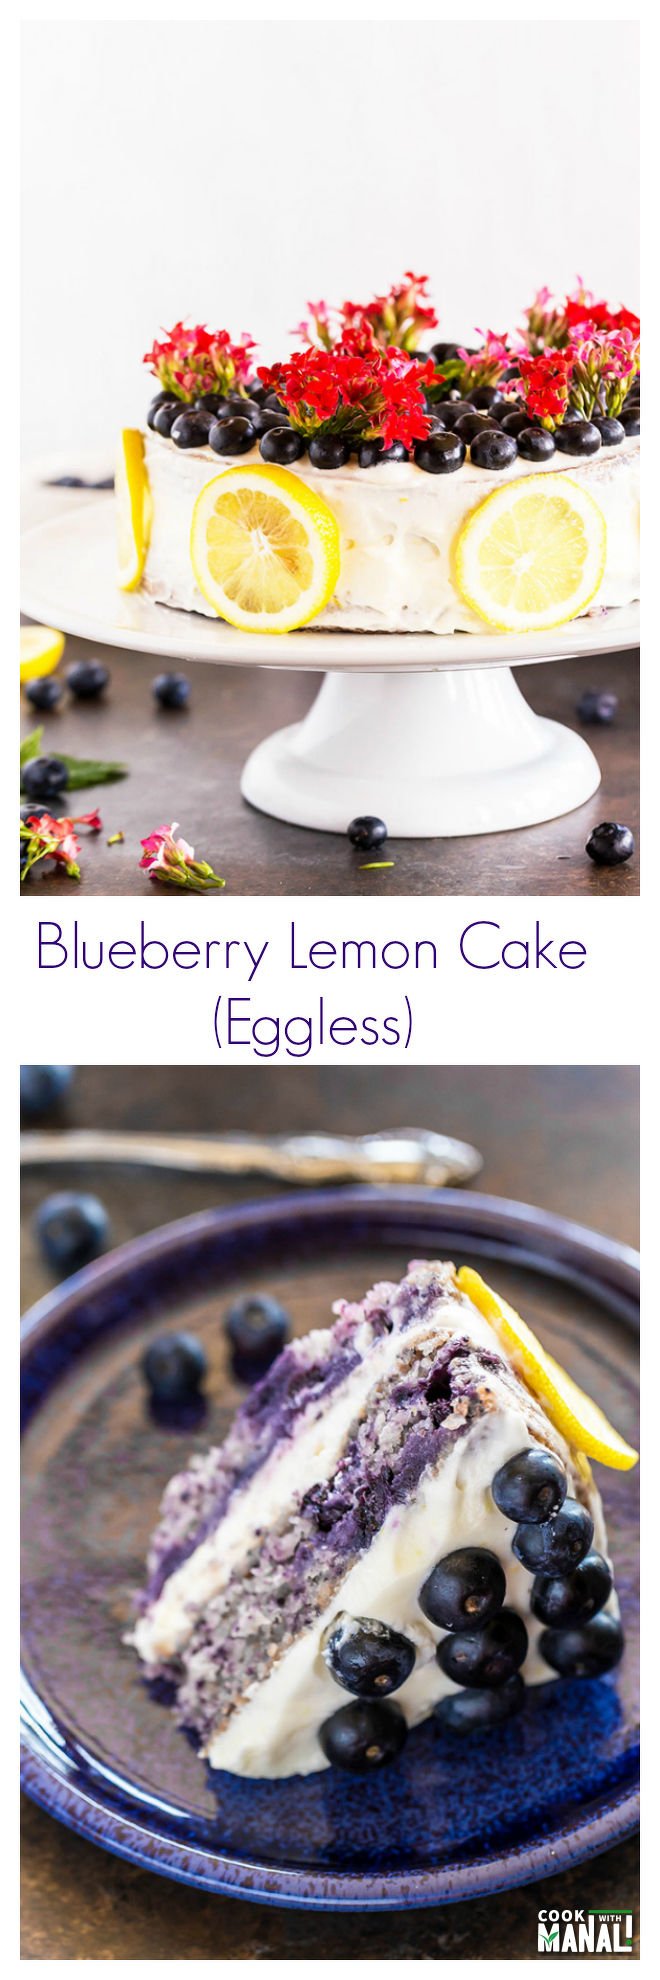 Eggless Blueberry Lemon Cake-Collage